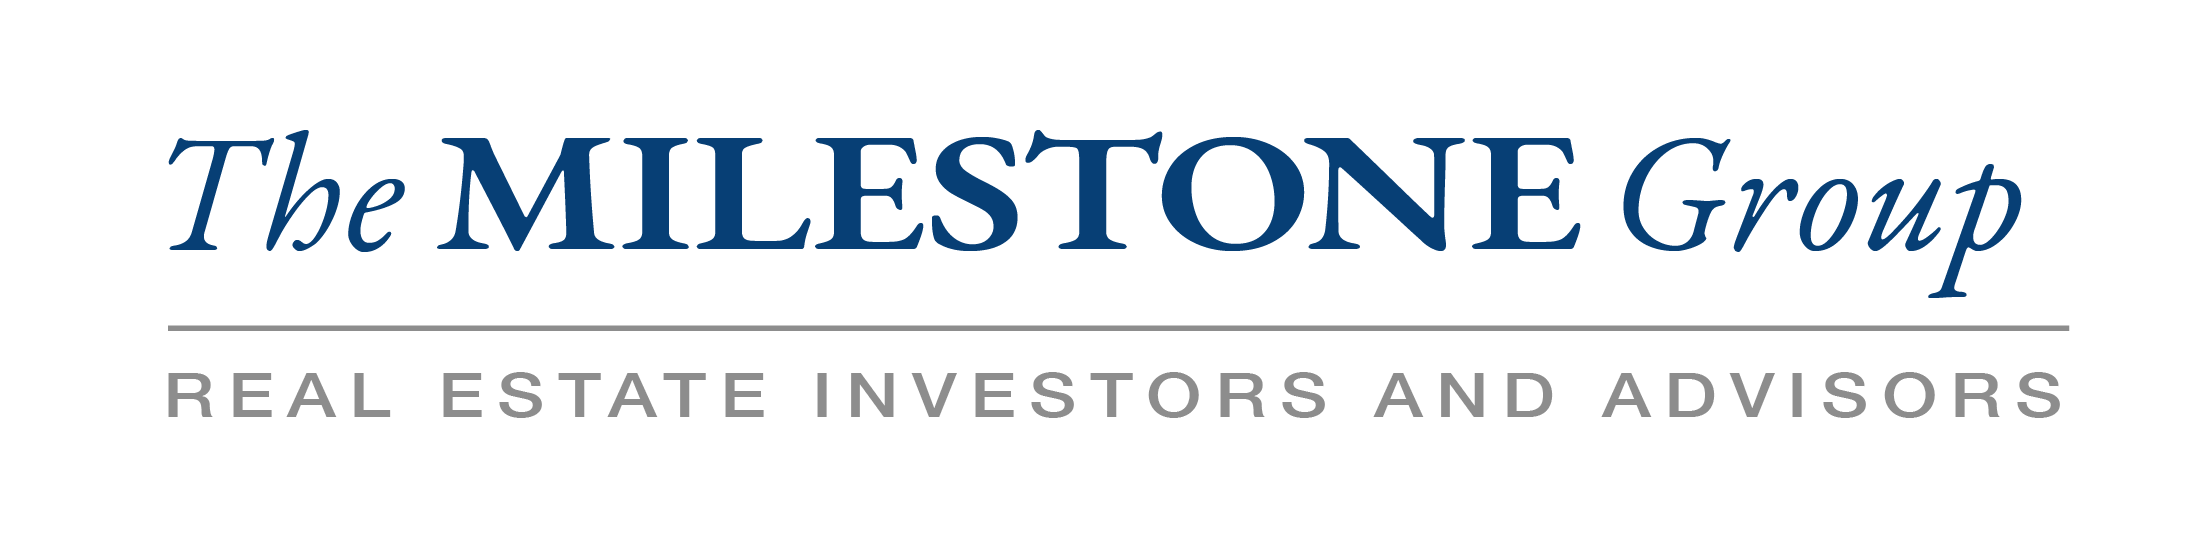 The Milestone Group logo